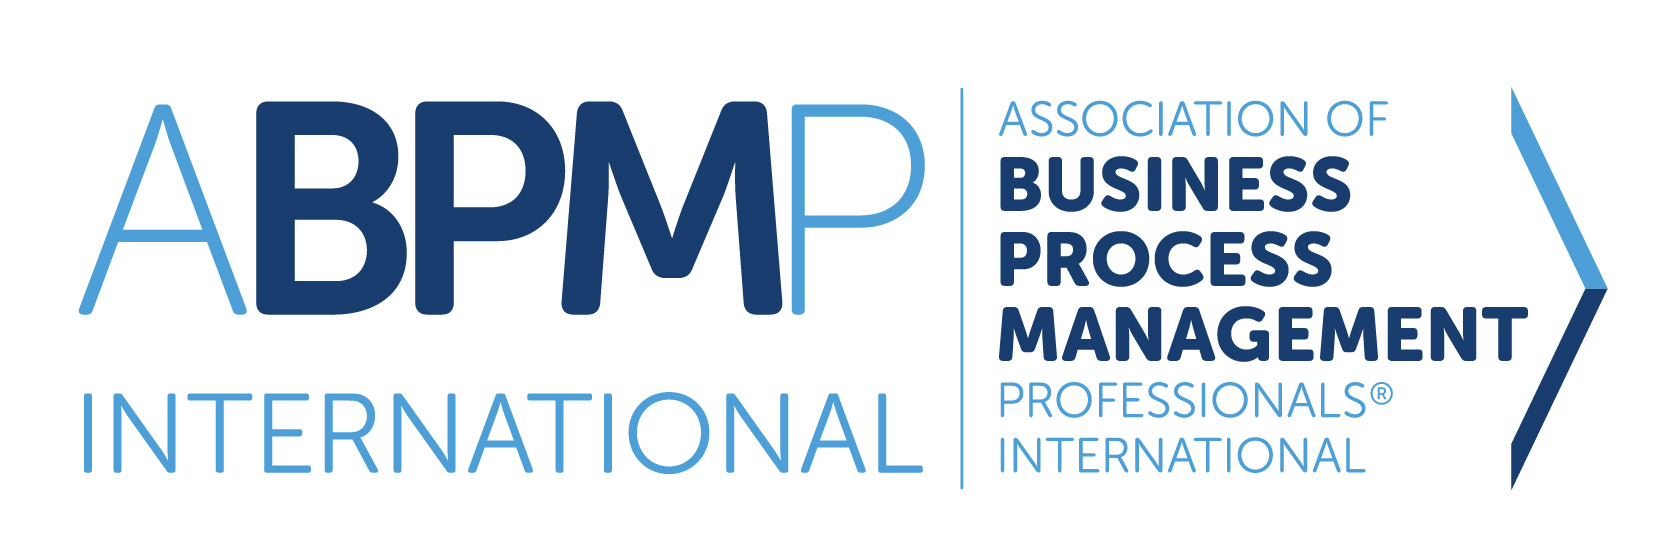 The Association of Business Process Management International (ABPMP)